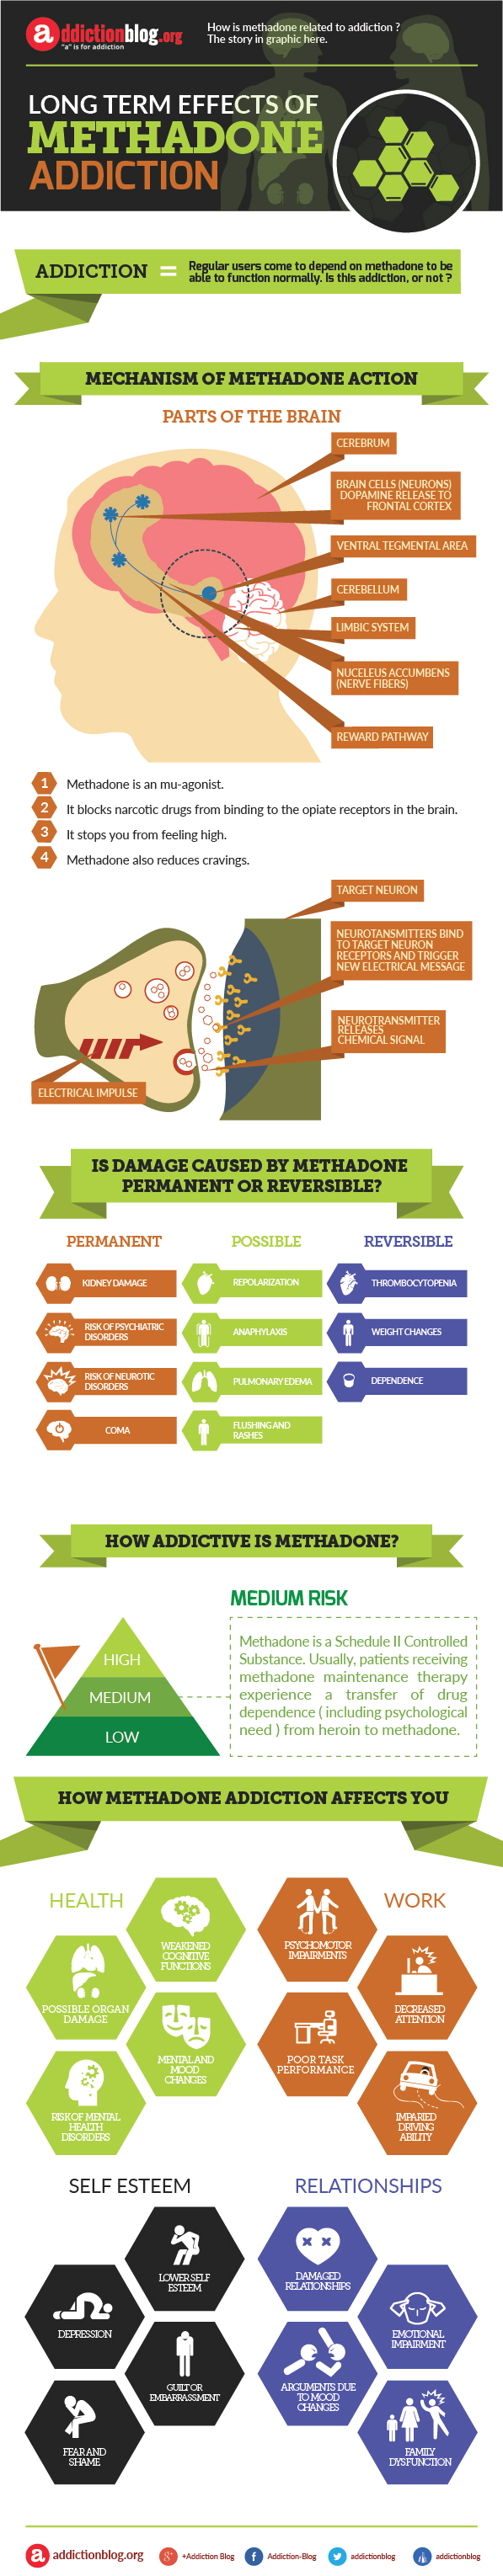 Long term effects of methadone addiction (INFOGRAPHIC)